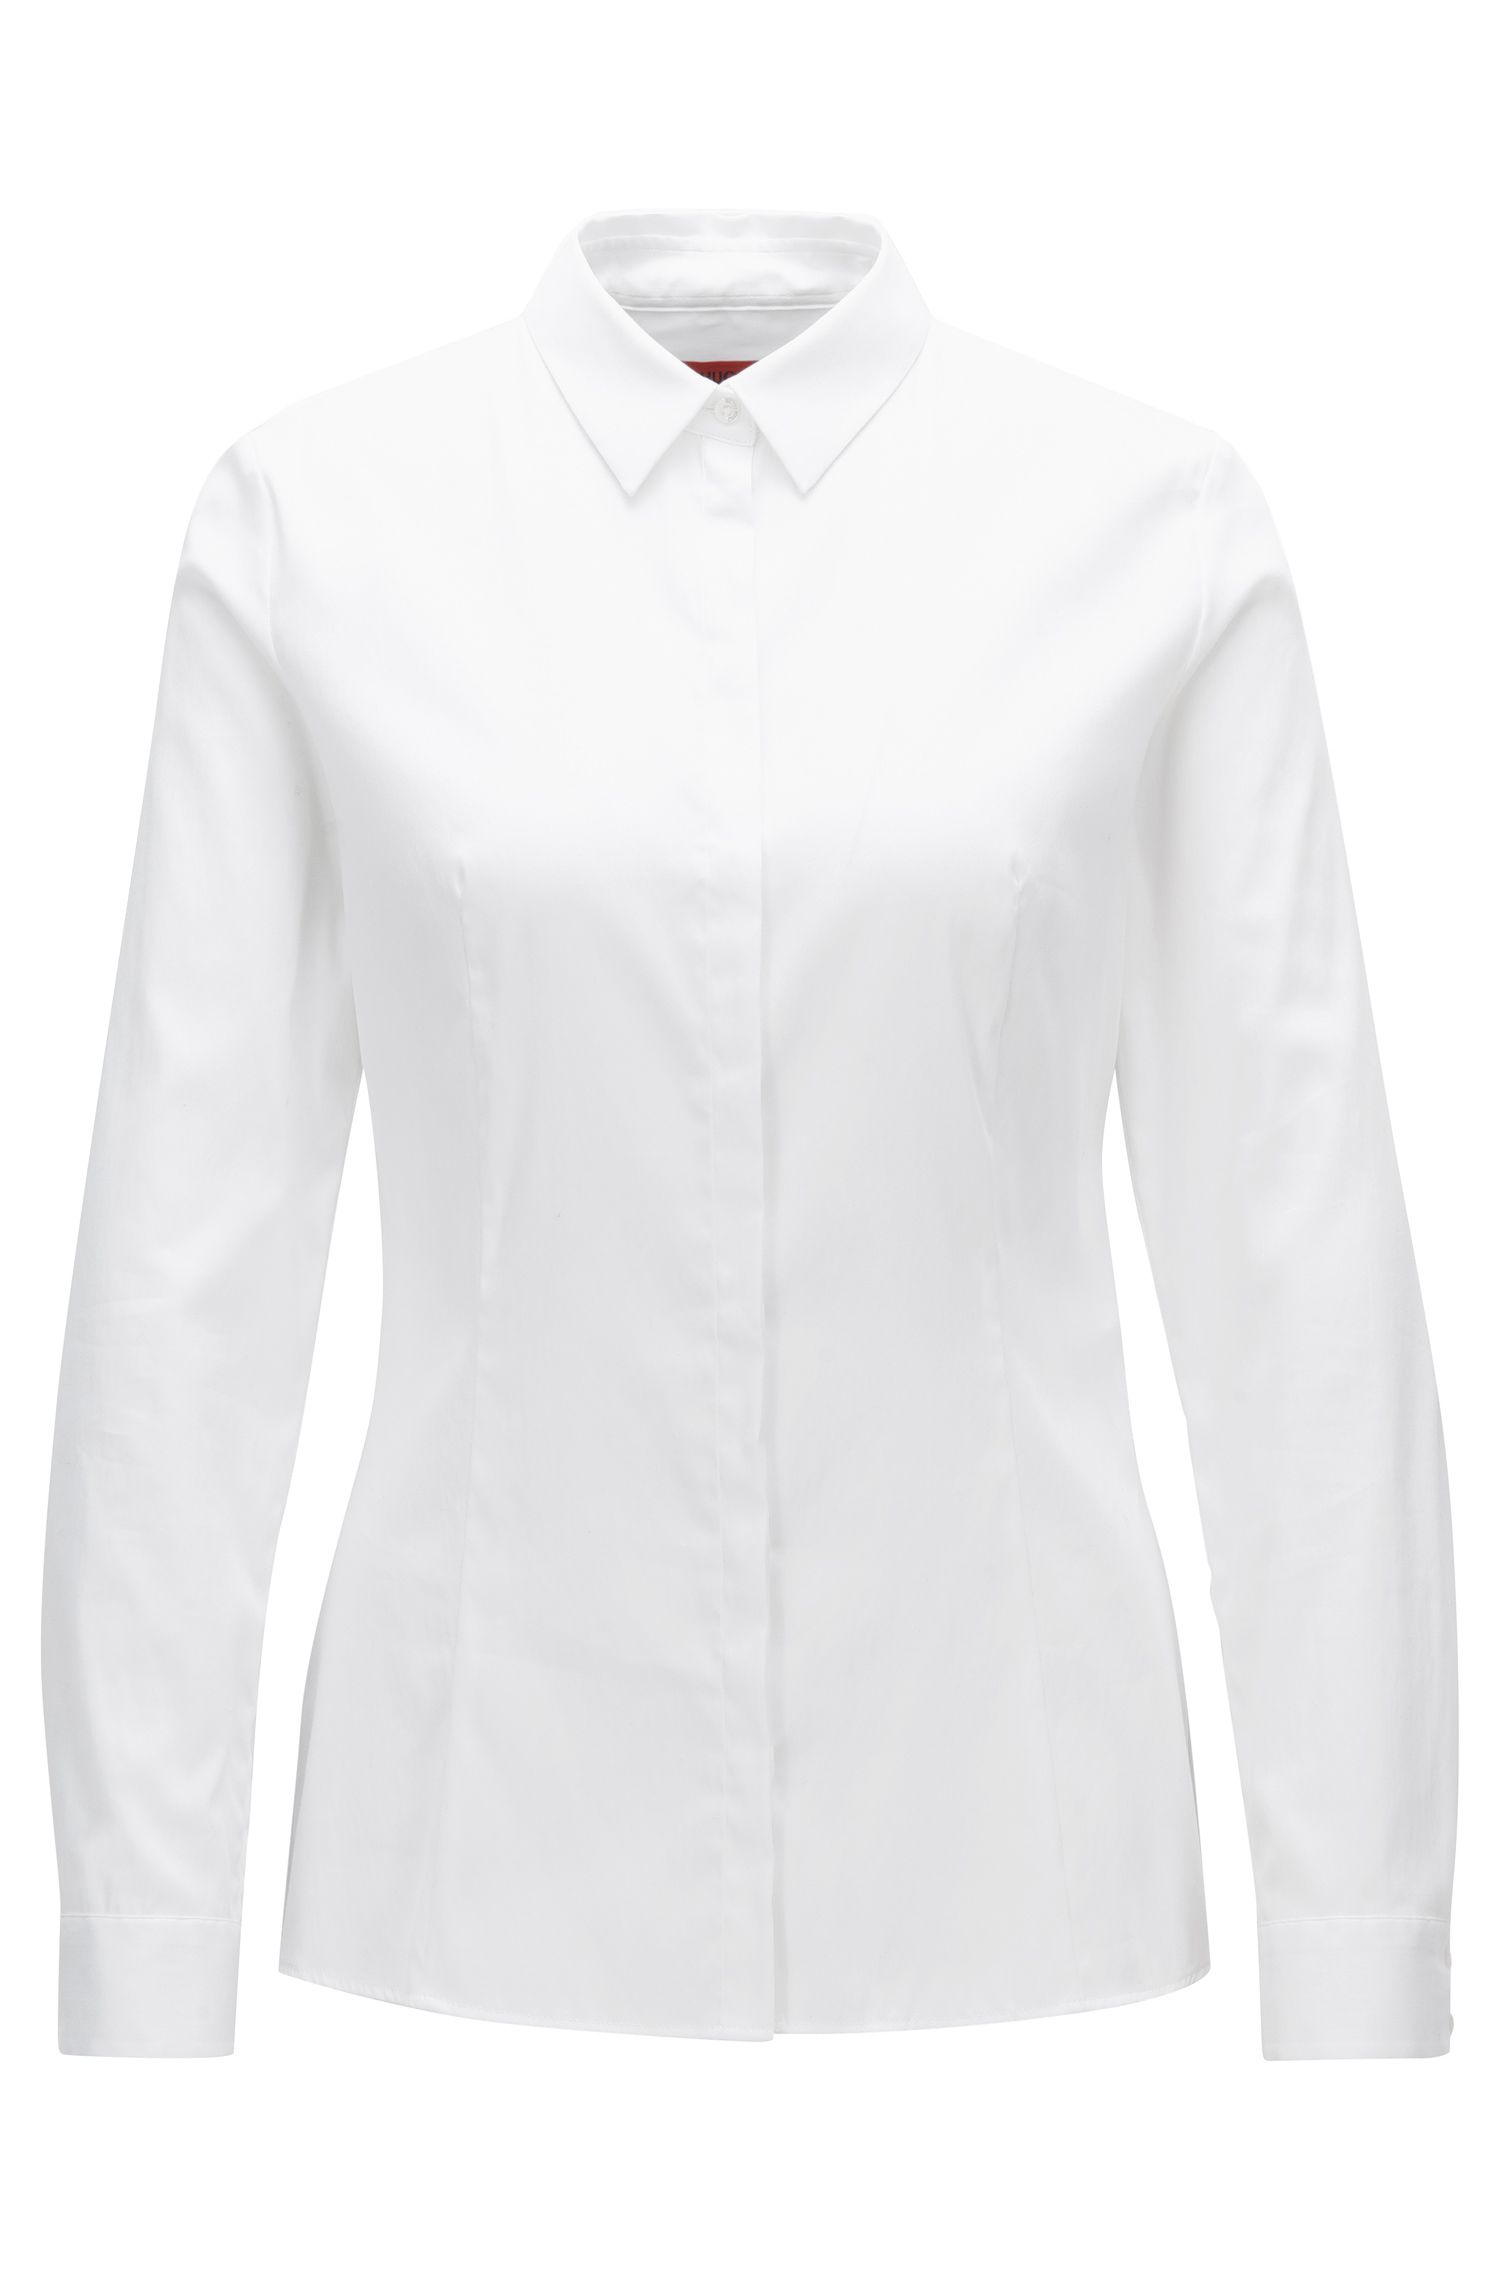 Slim-fit shirt in a strech cotton blend